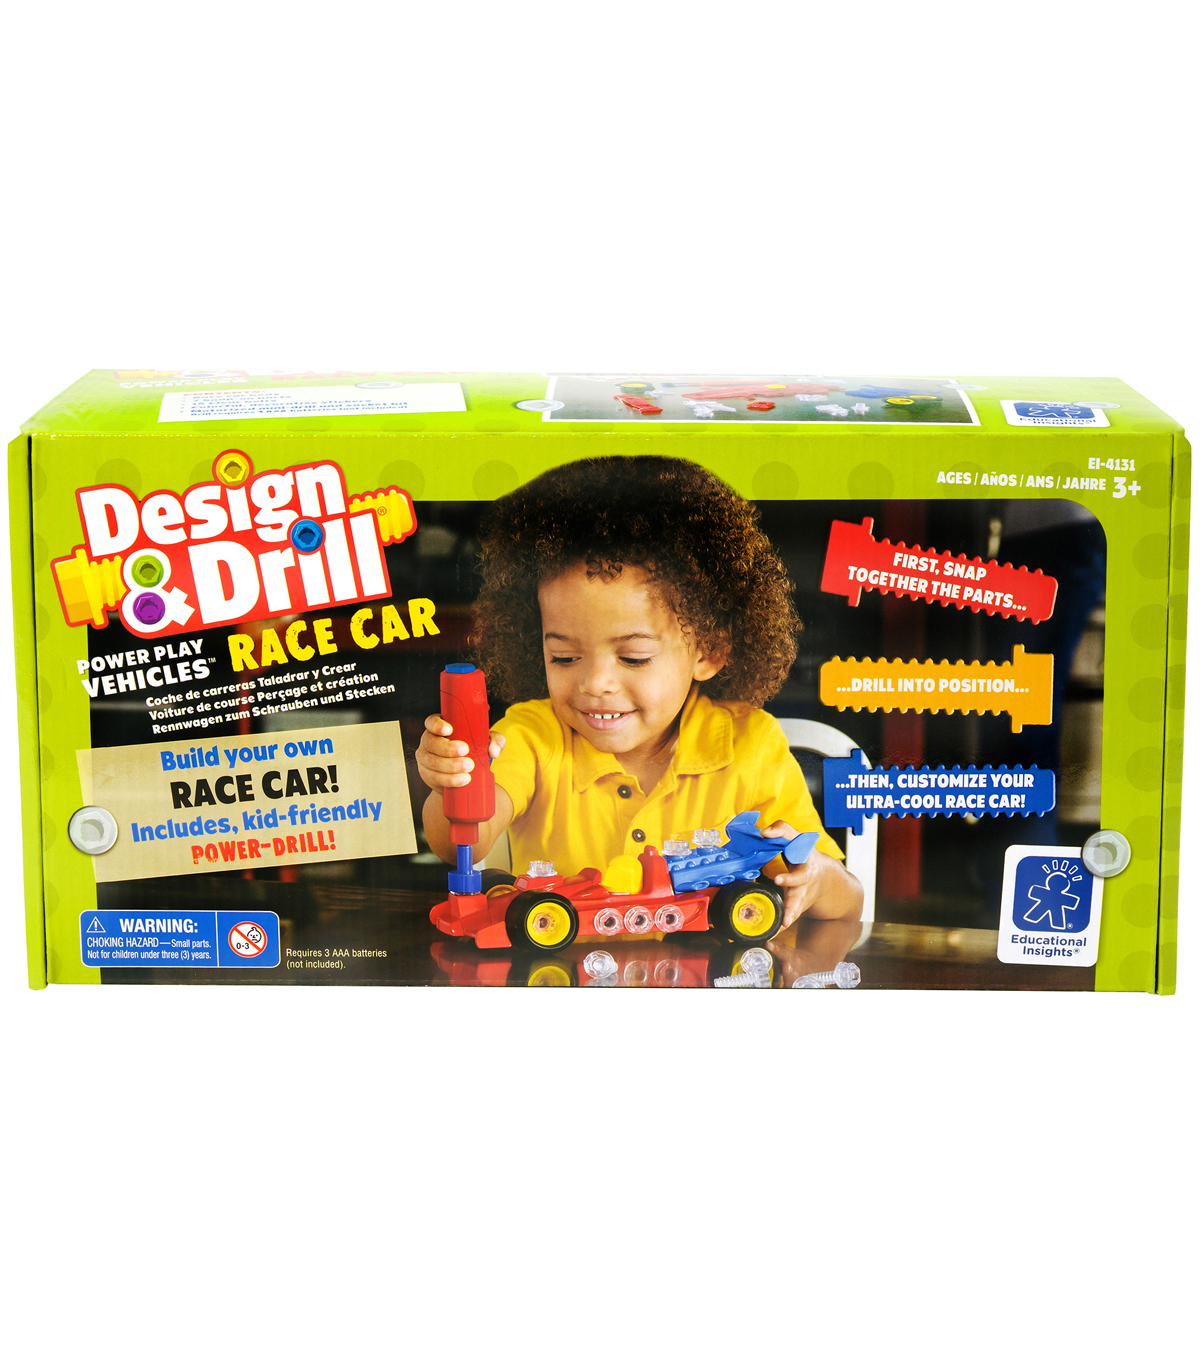 Design & Drill Power Play Vehicles Race Car